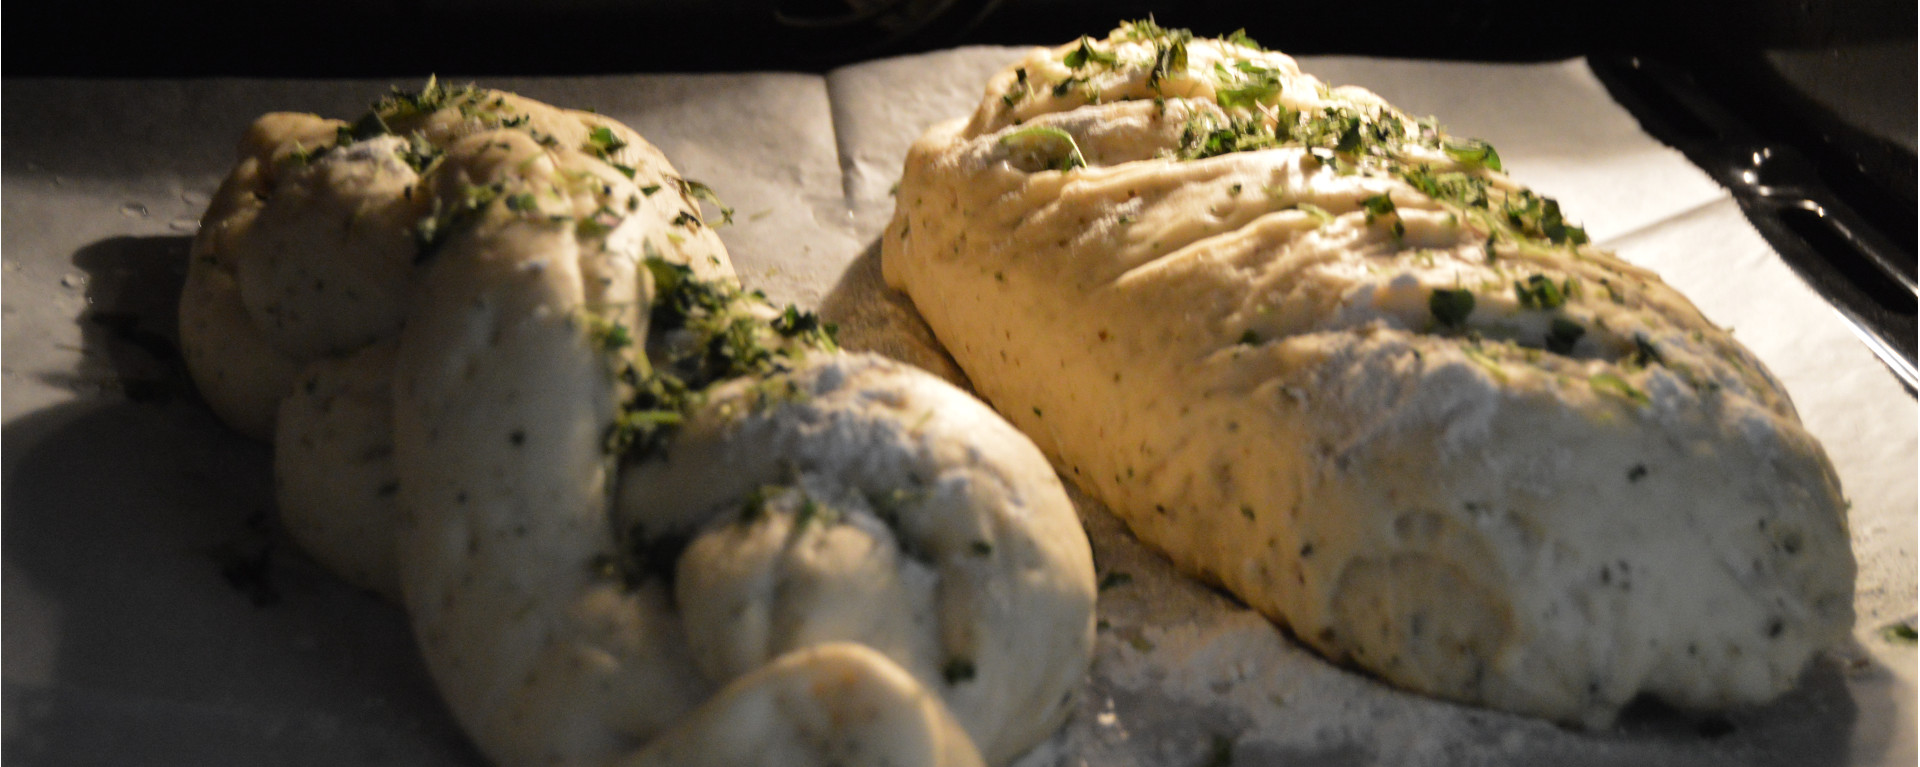 ChefNorway's Oregano Bread